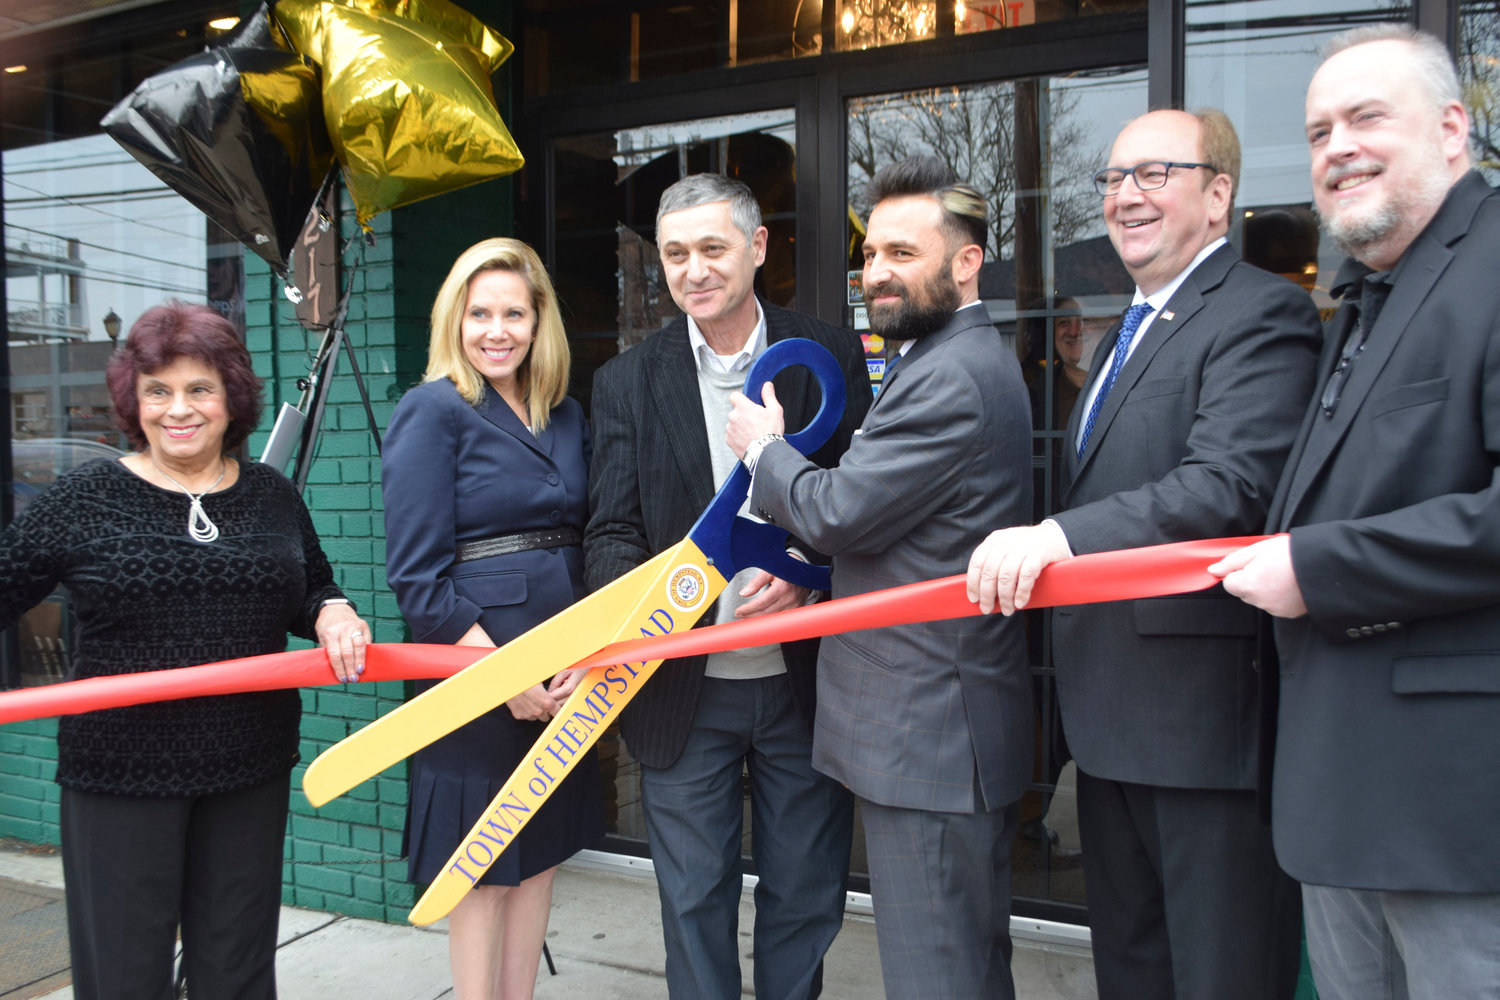 On Broadway in Hewlett, Artistic Men's Grooming has opened. From left active Woodmere resident Ann DeMichael, Hempstead Town Supervisor Laura Gillen, Alex Yakubov, owner Leon Yakubov, Hewlett-Woodmere Business Association President David Friedman and HWBA First VP John Roblin.